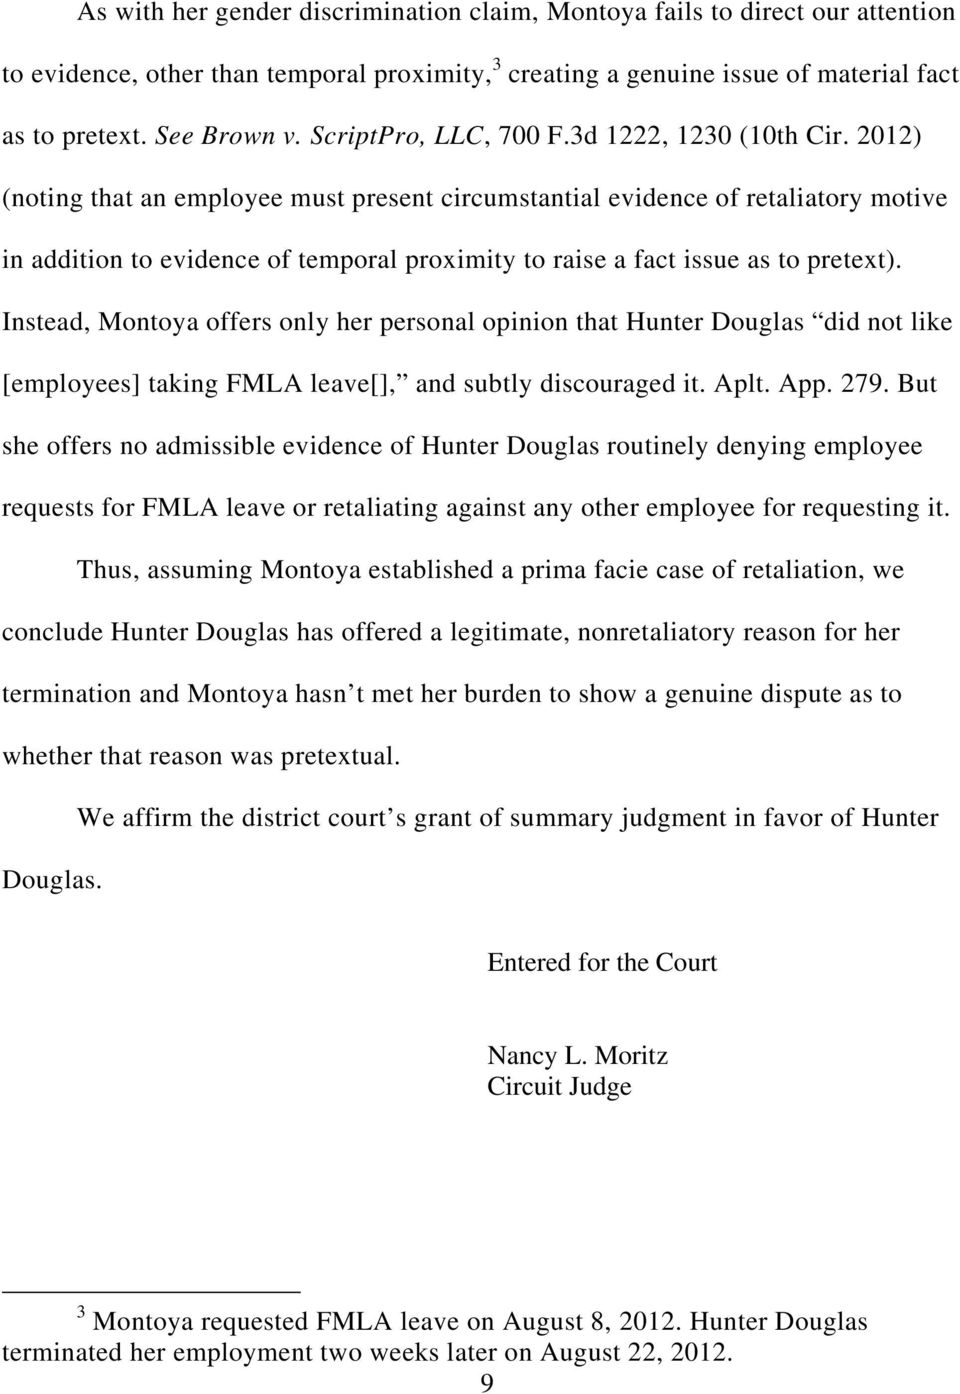 2012) (noting that an employee must present circumstantial evidence of retaliatory motive in addition to evidence of temporal proximity to raise a fact issue as to pretext).